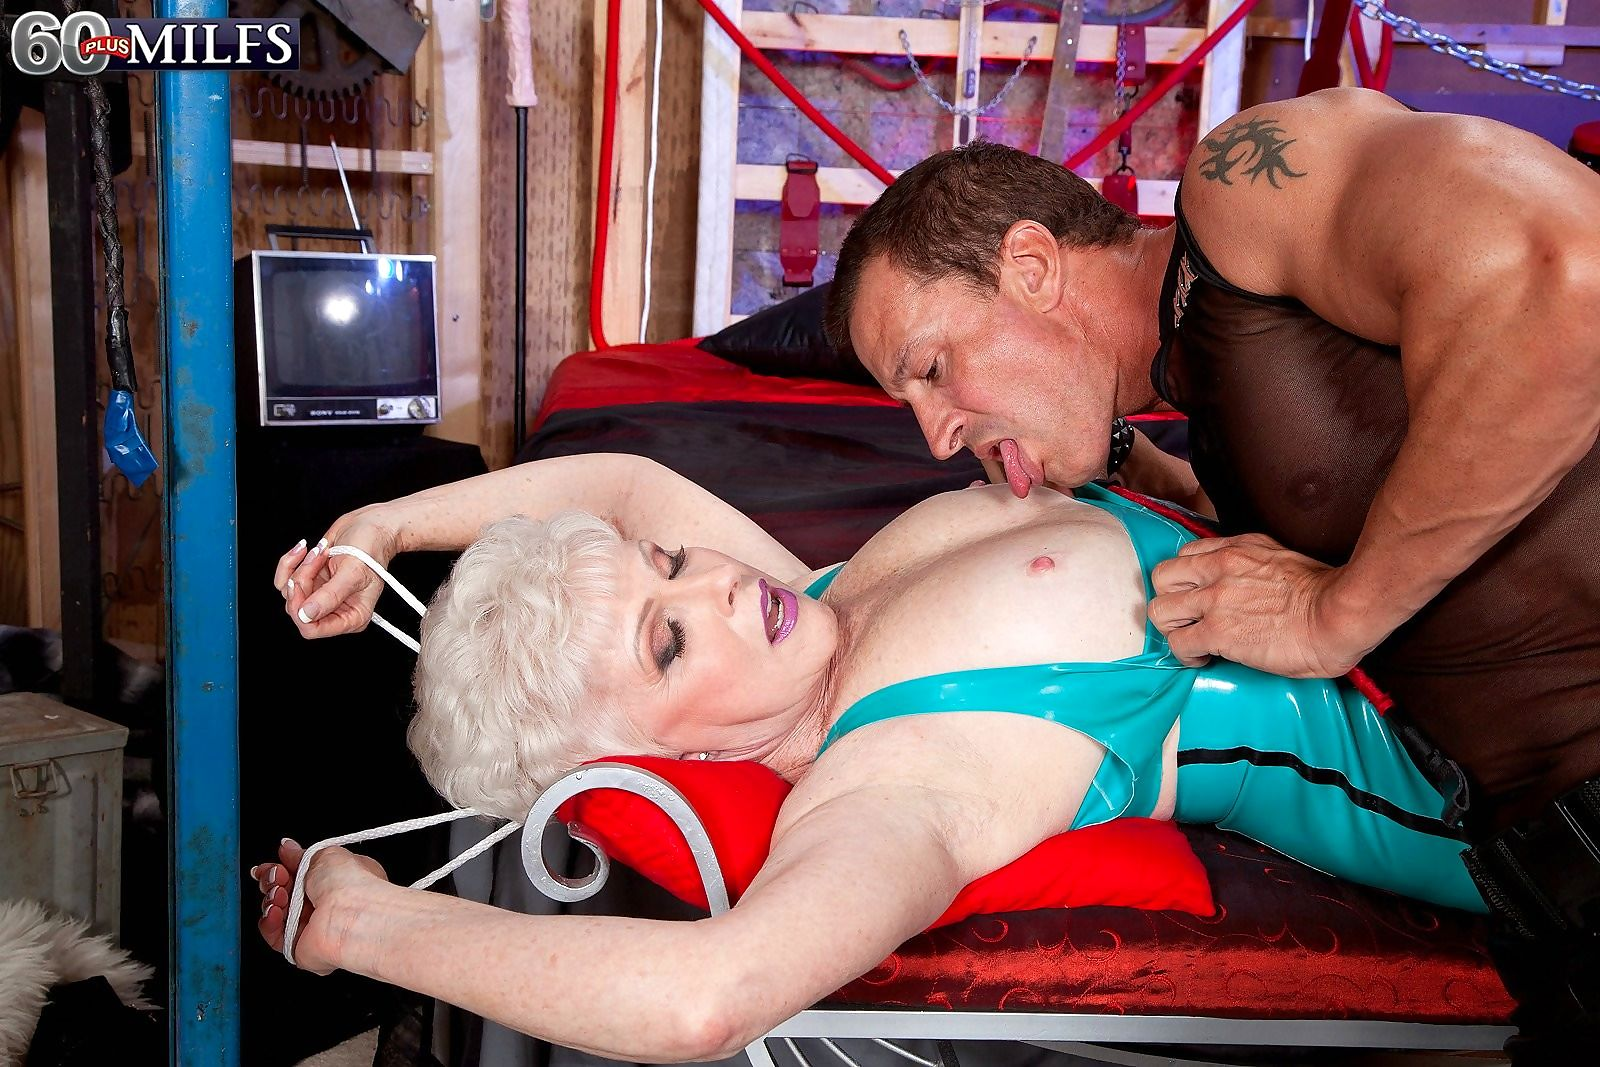 65yearold wife and grandmother fucked bdsm in porn - part 2230